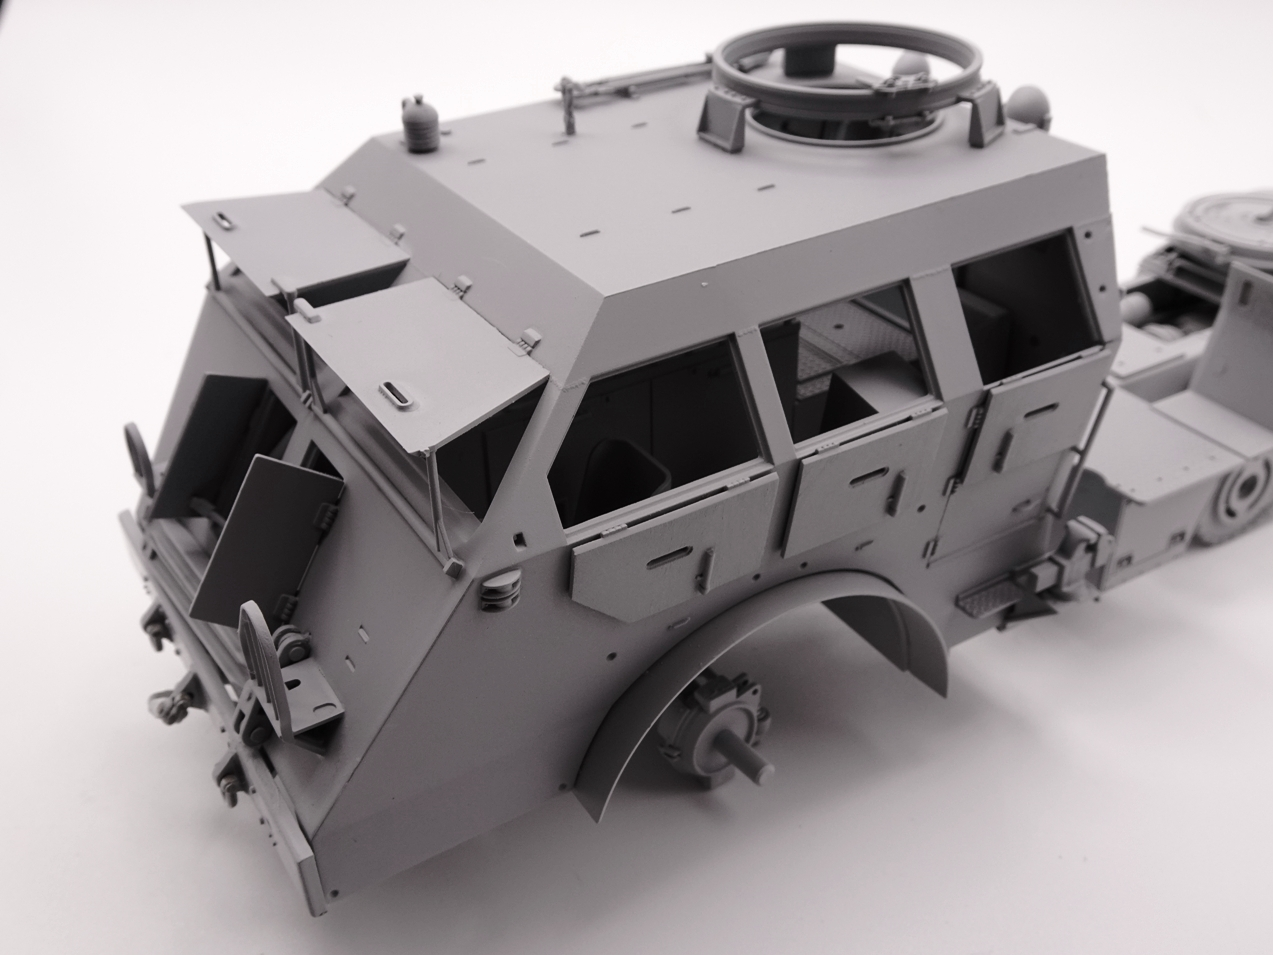 [Tamiya 1/35] M26 Armored tank recovery vehicle réf. 35244 - Page 2 M26-2709-4